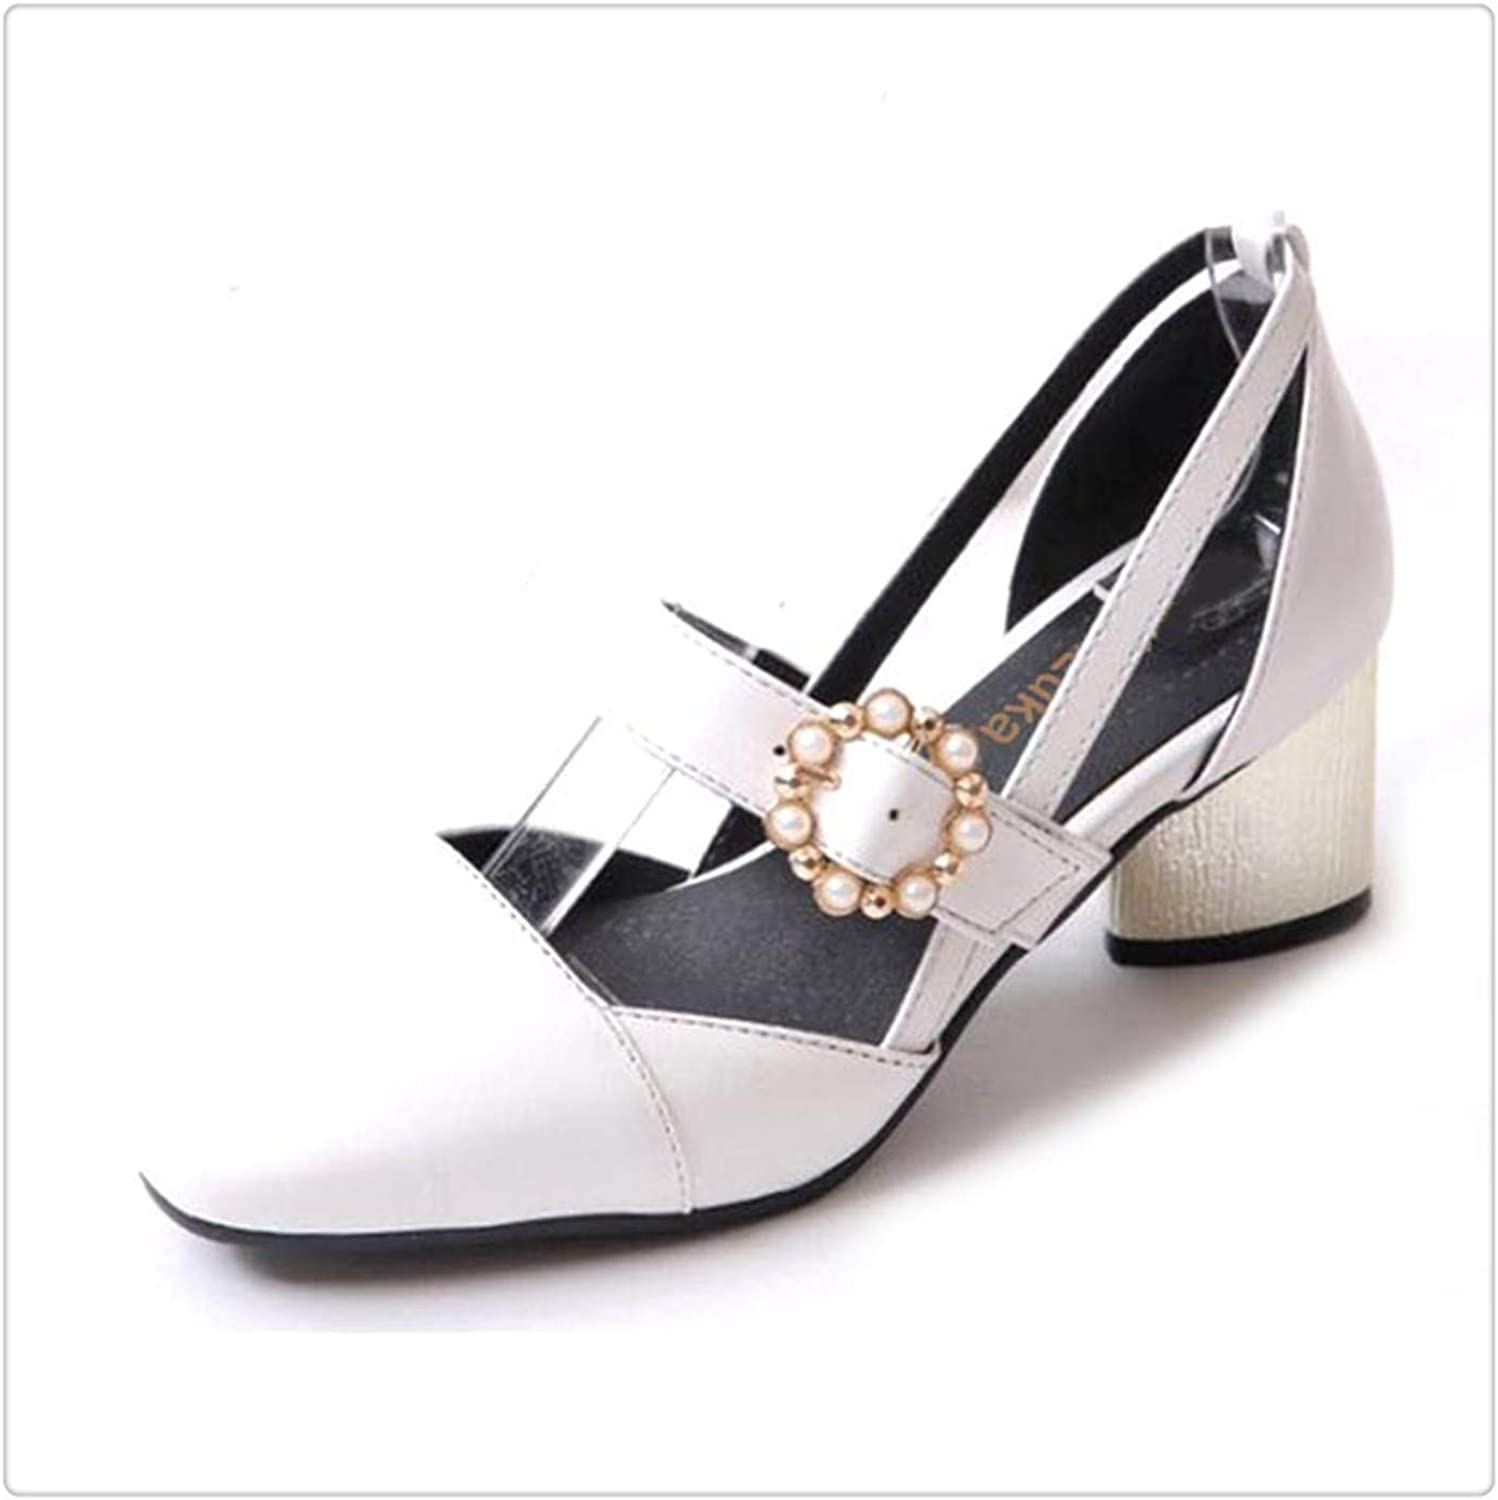 ZXCVB& Plus Size 32-45 LadiesHigh Heels Sandals Women Buckle String Bead Heel shoes Women's Fashion Office Daily Footwear White 10.5